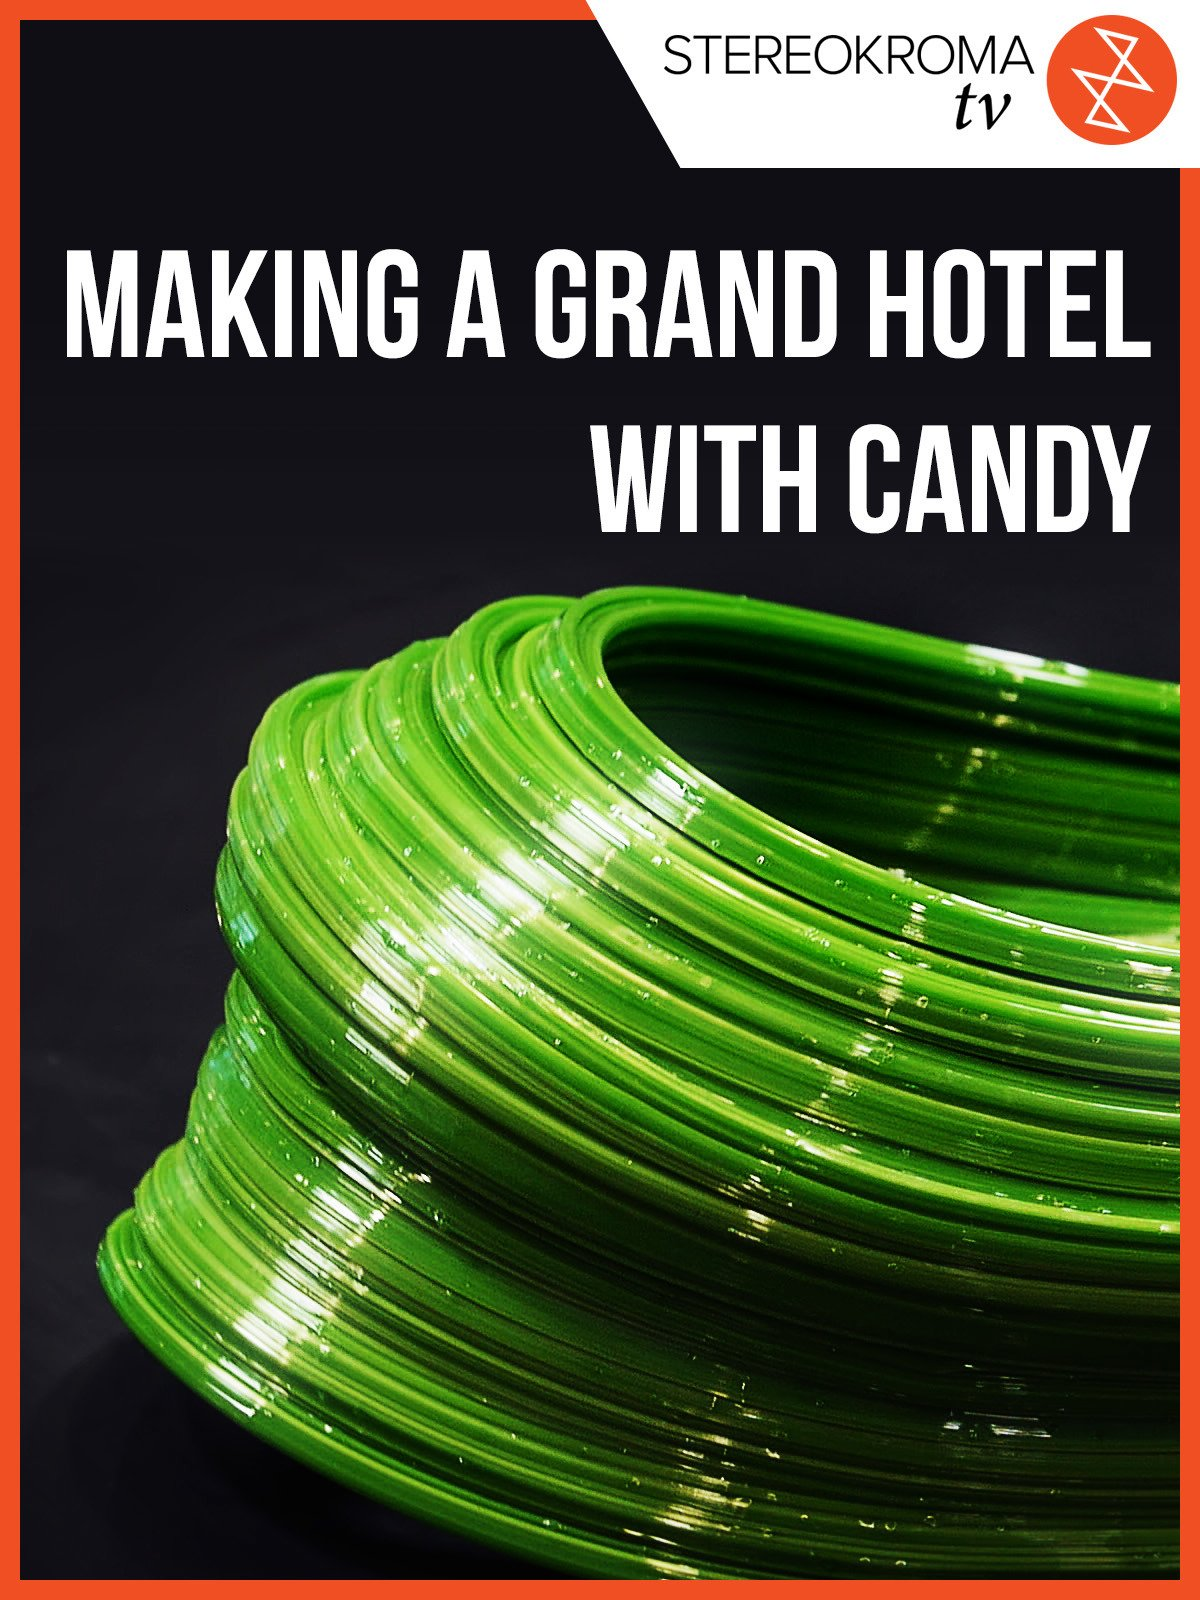 Making a Grand Hotel with Candy